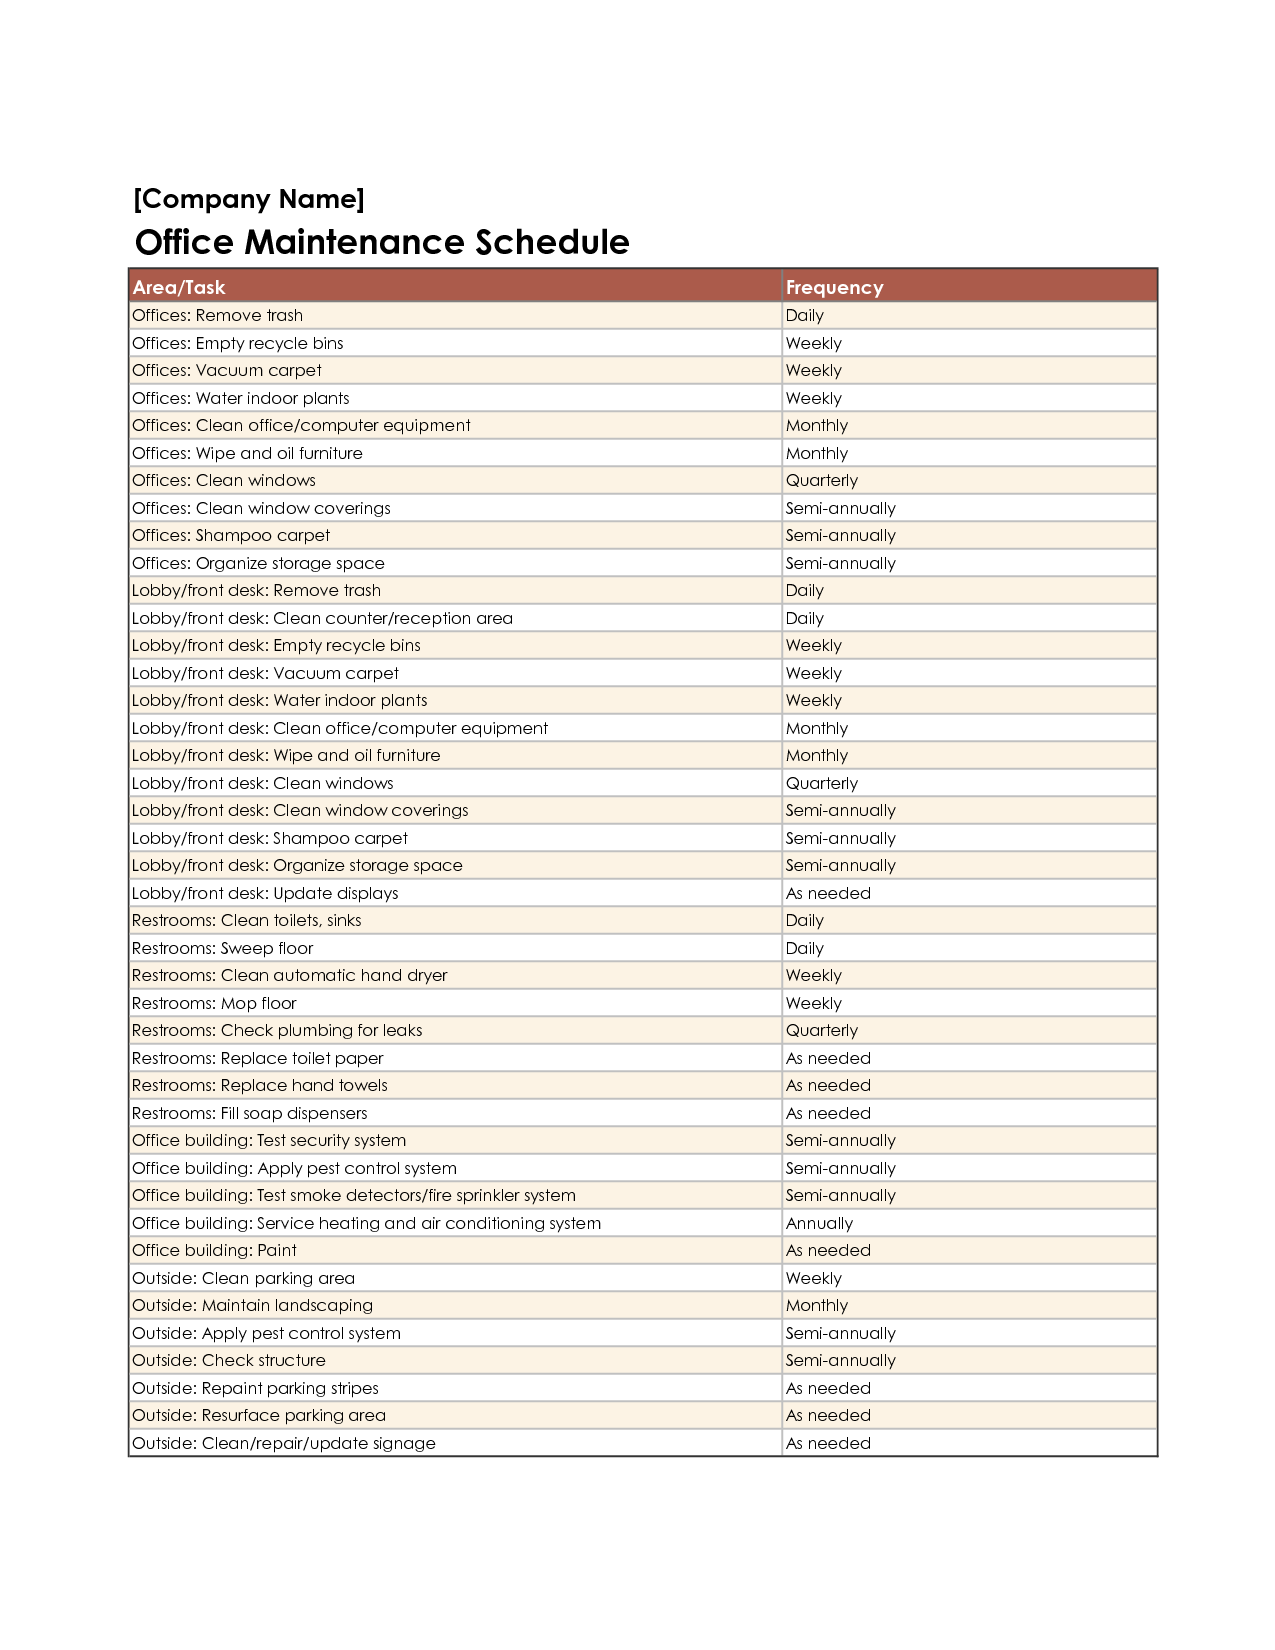 Equipment maintenance schedule template excel http www for Yearly garden maintenance schedule